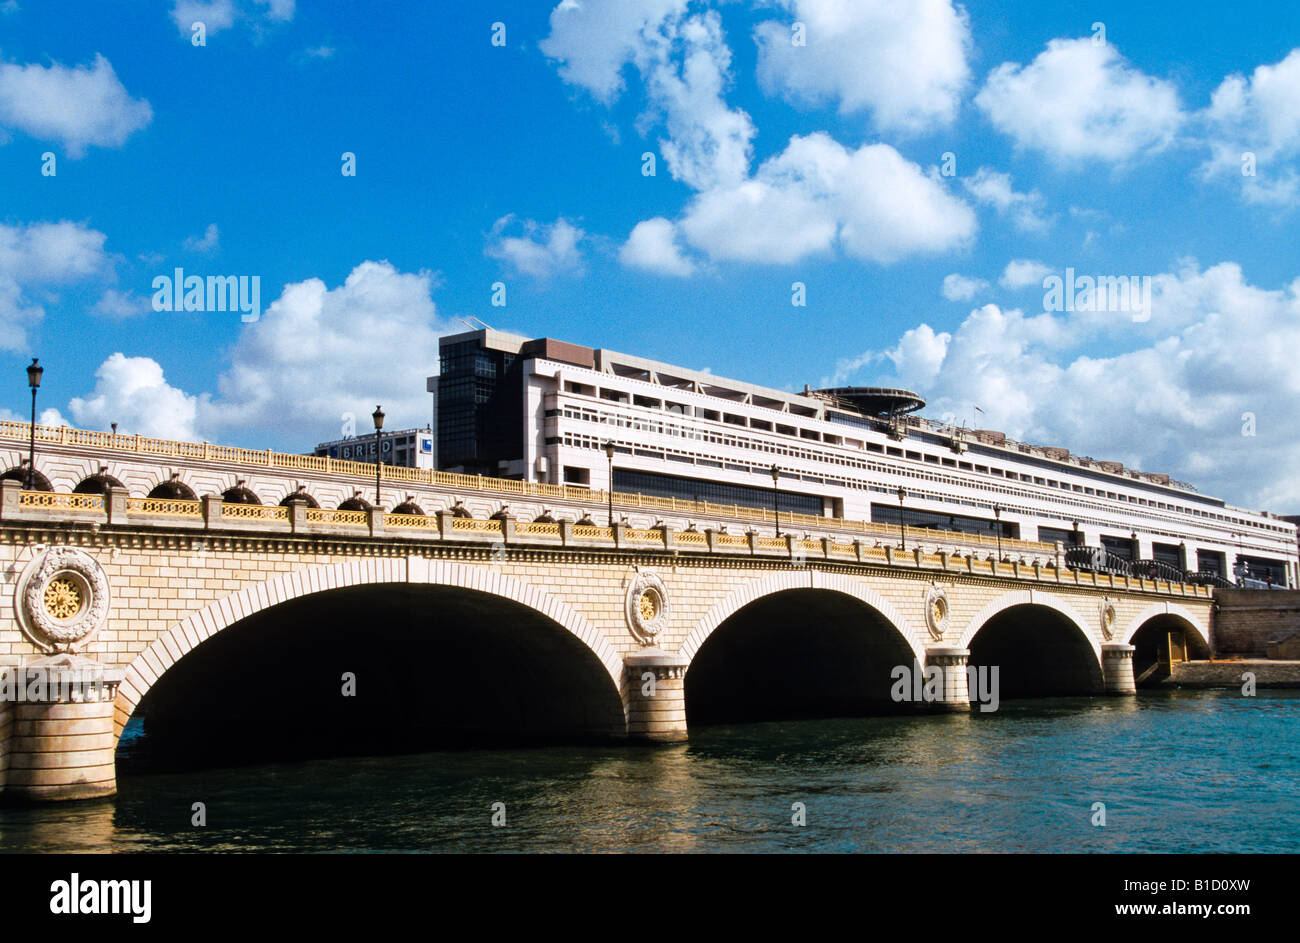 MINISTRY BUILDING BERCY PARIS FRANCE - Stock Image